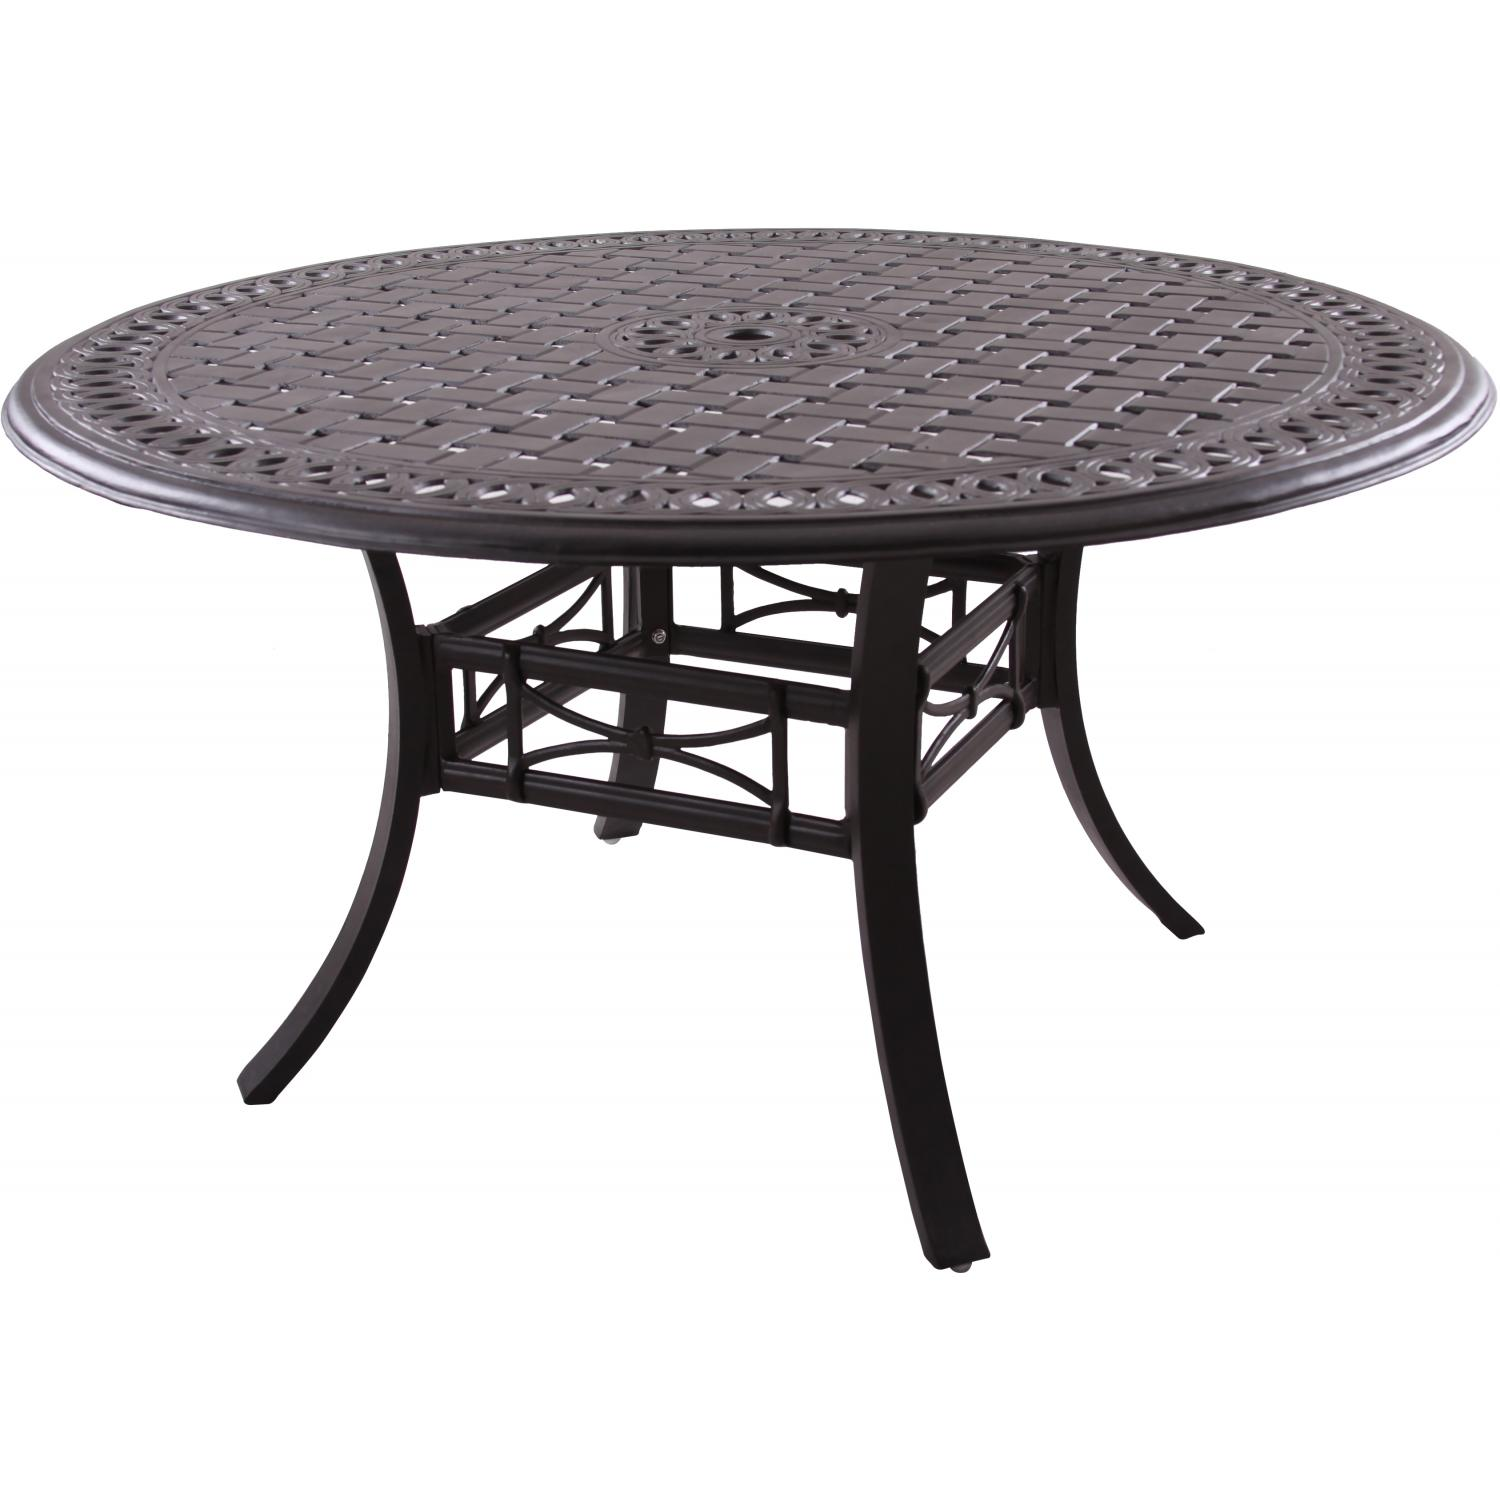 Attractive Patio Tables USA amp Canada  : 967f3f364961b3c546347a68994f7df7 from www.homeequipmentstars.com size 1500 x 1500 jpeg 123kB